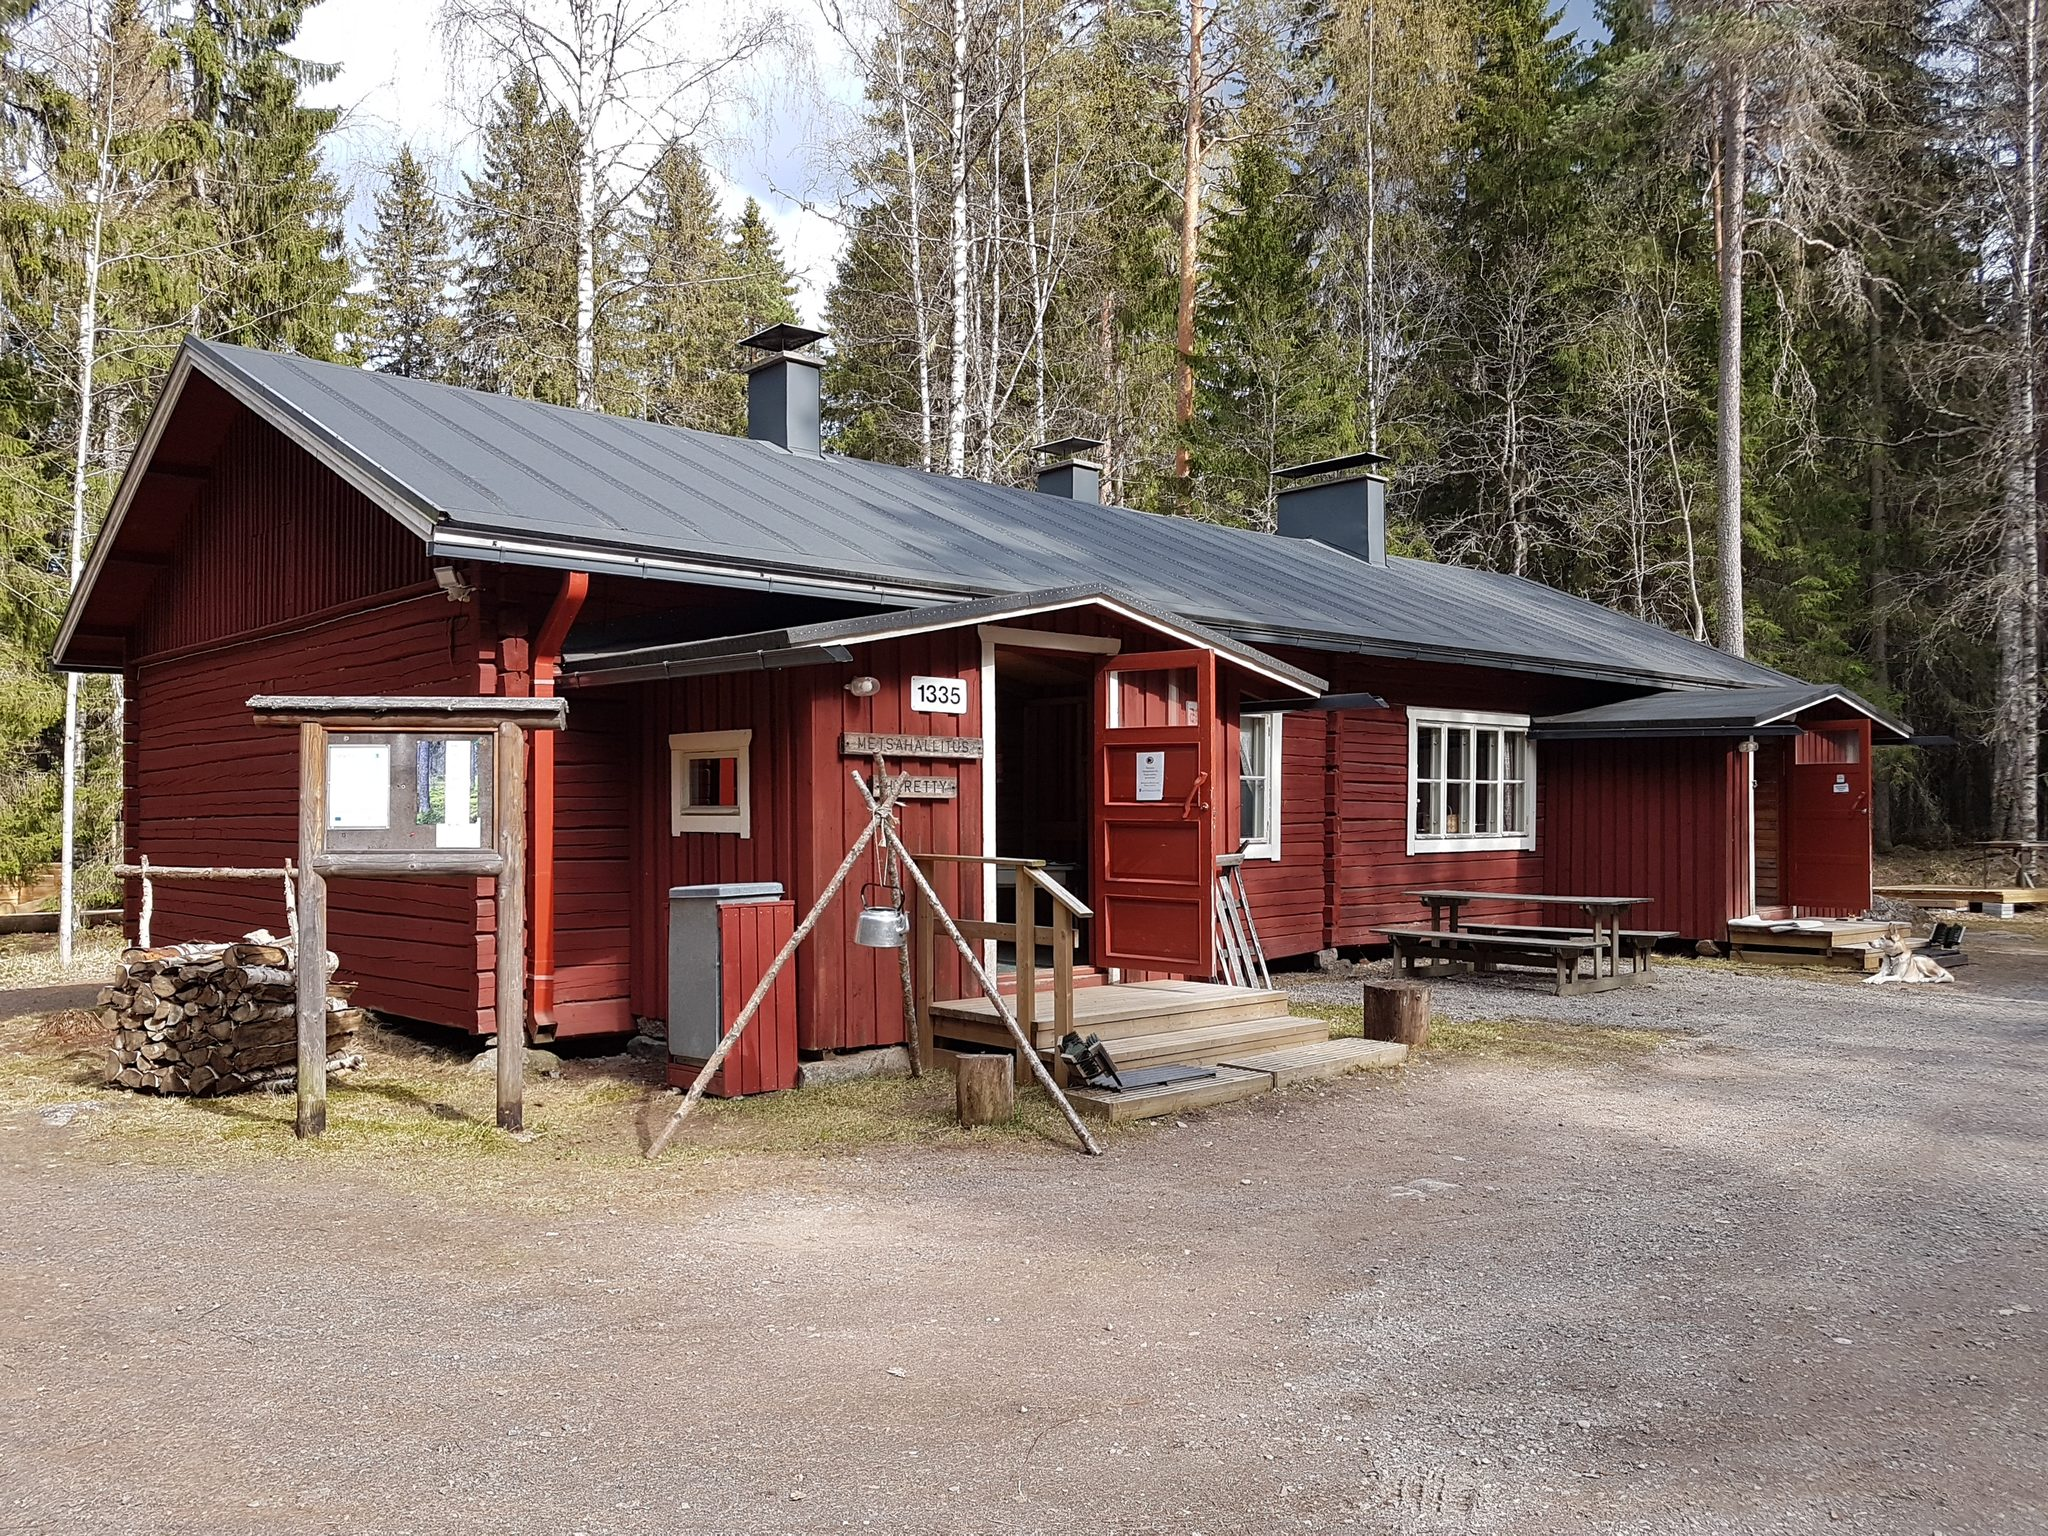 Heretty cabin accommodation